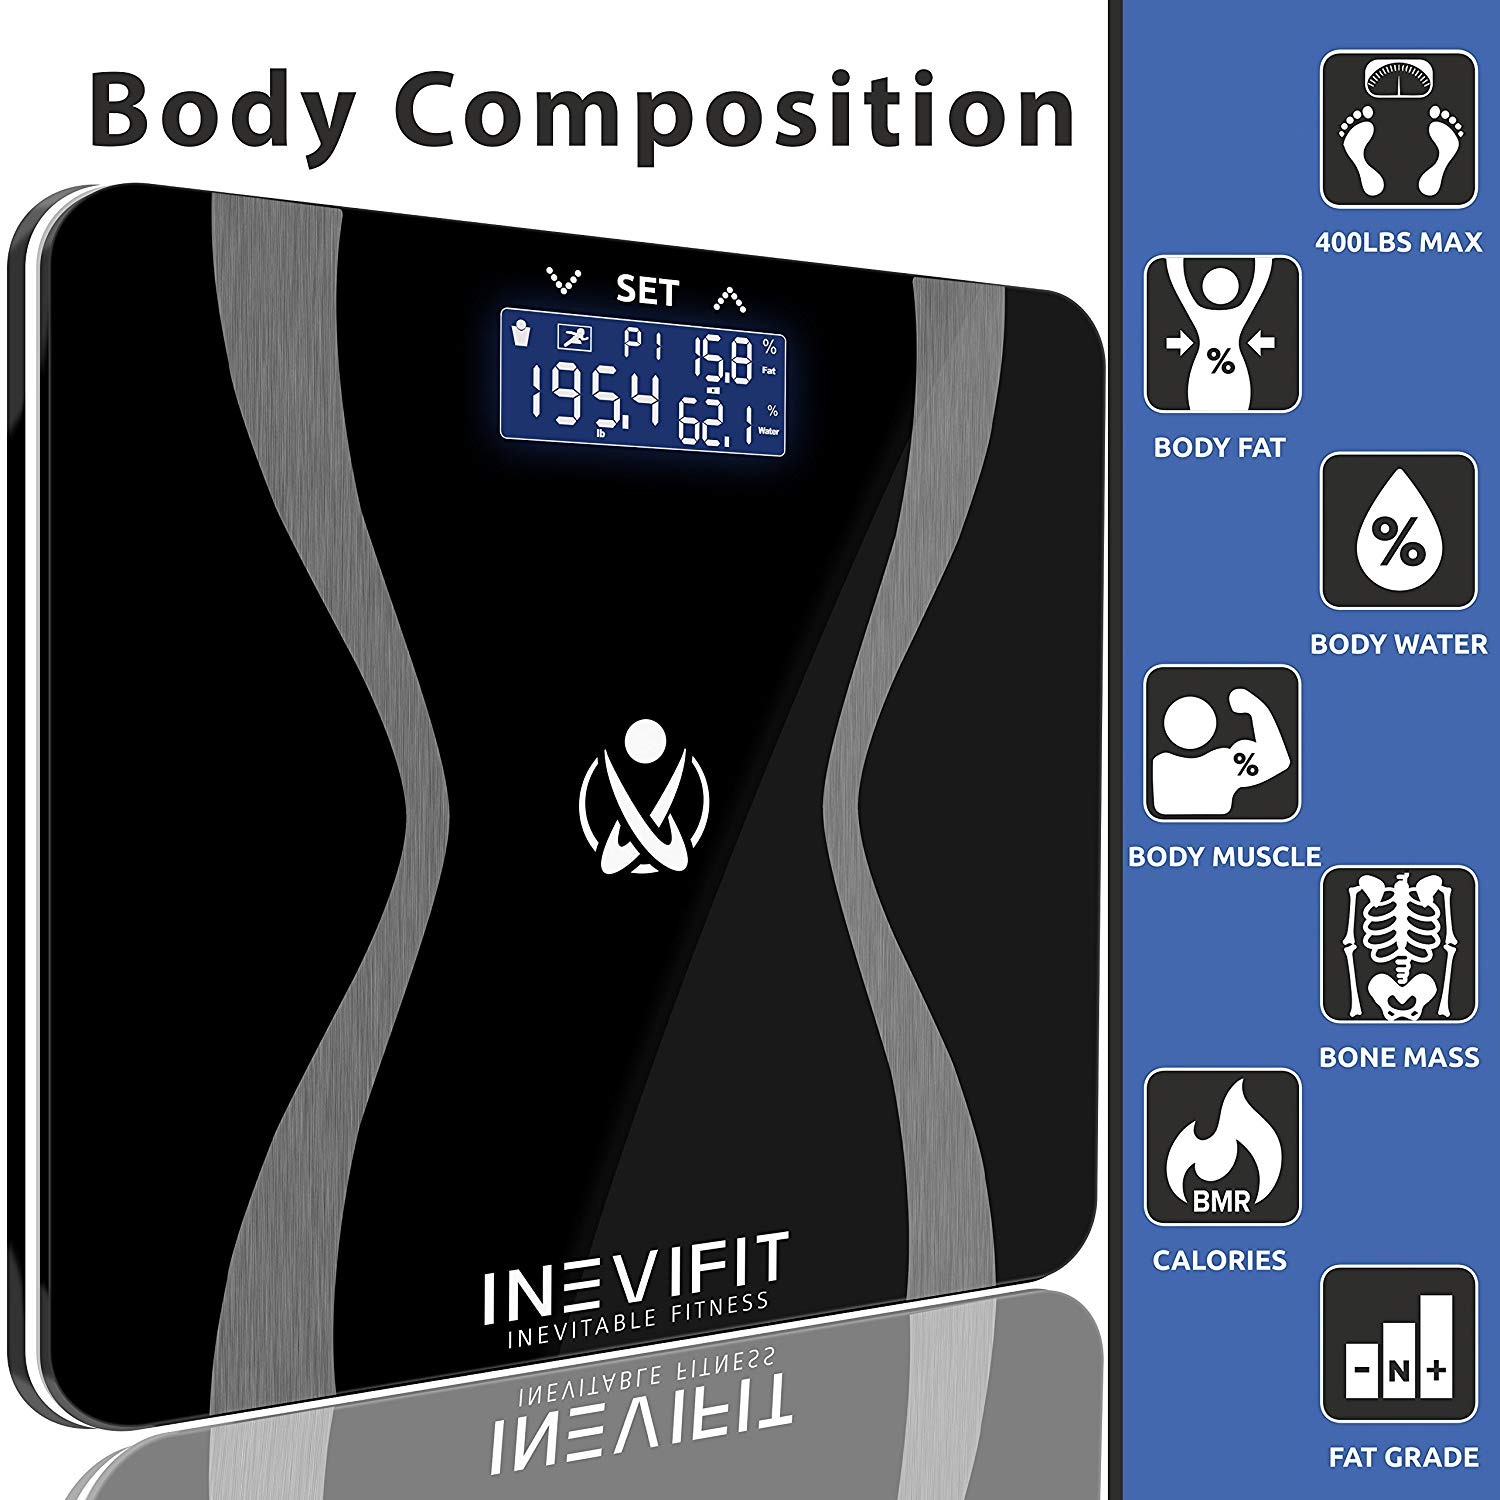 Fat navy blue star clipart clip library stock INEVIFIT Body-Analyzer Scale, Highly Accurate Digital Bathroom Body  Composition Analyzer, Measures Weight, Body Fat, Water, Muscle & Bone Mass  for 10 ... clip library stock